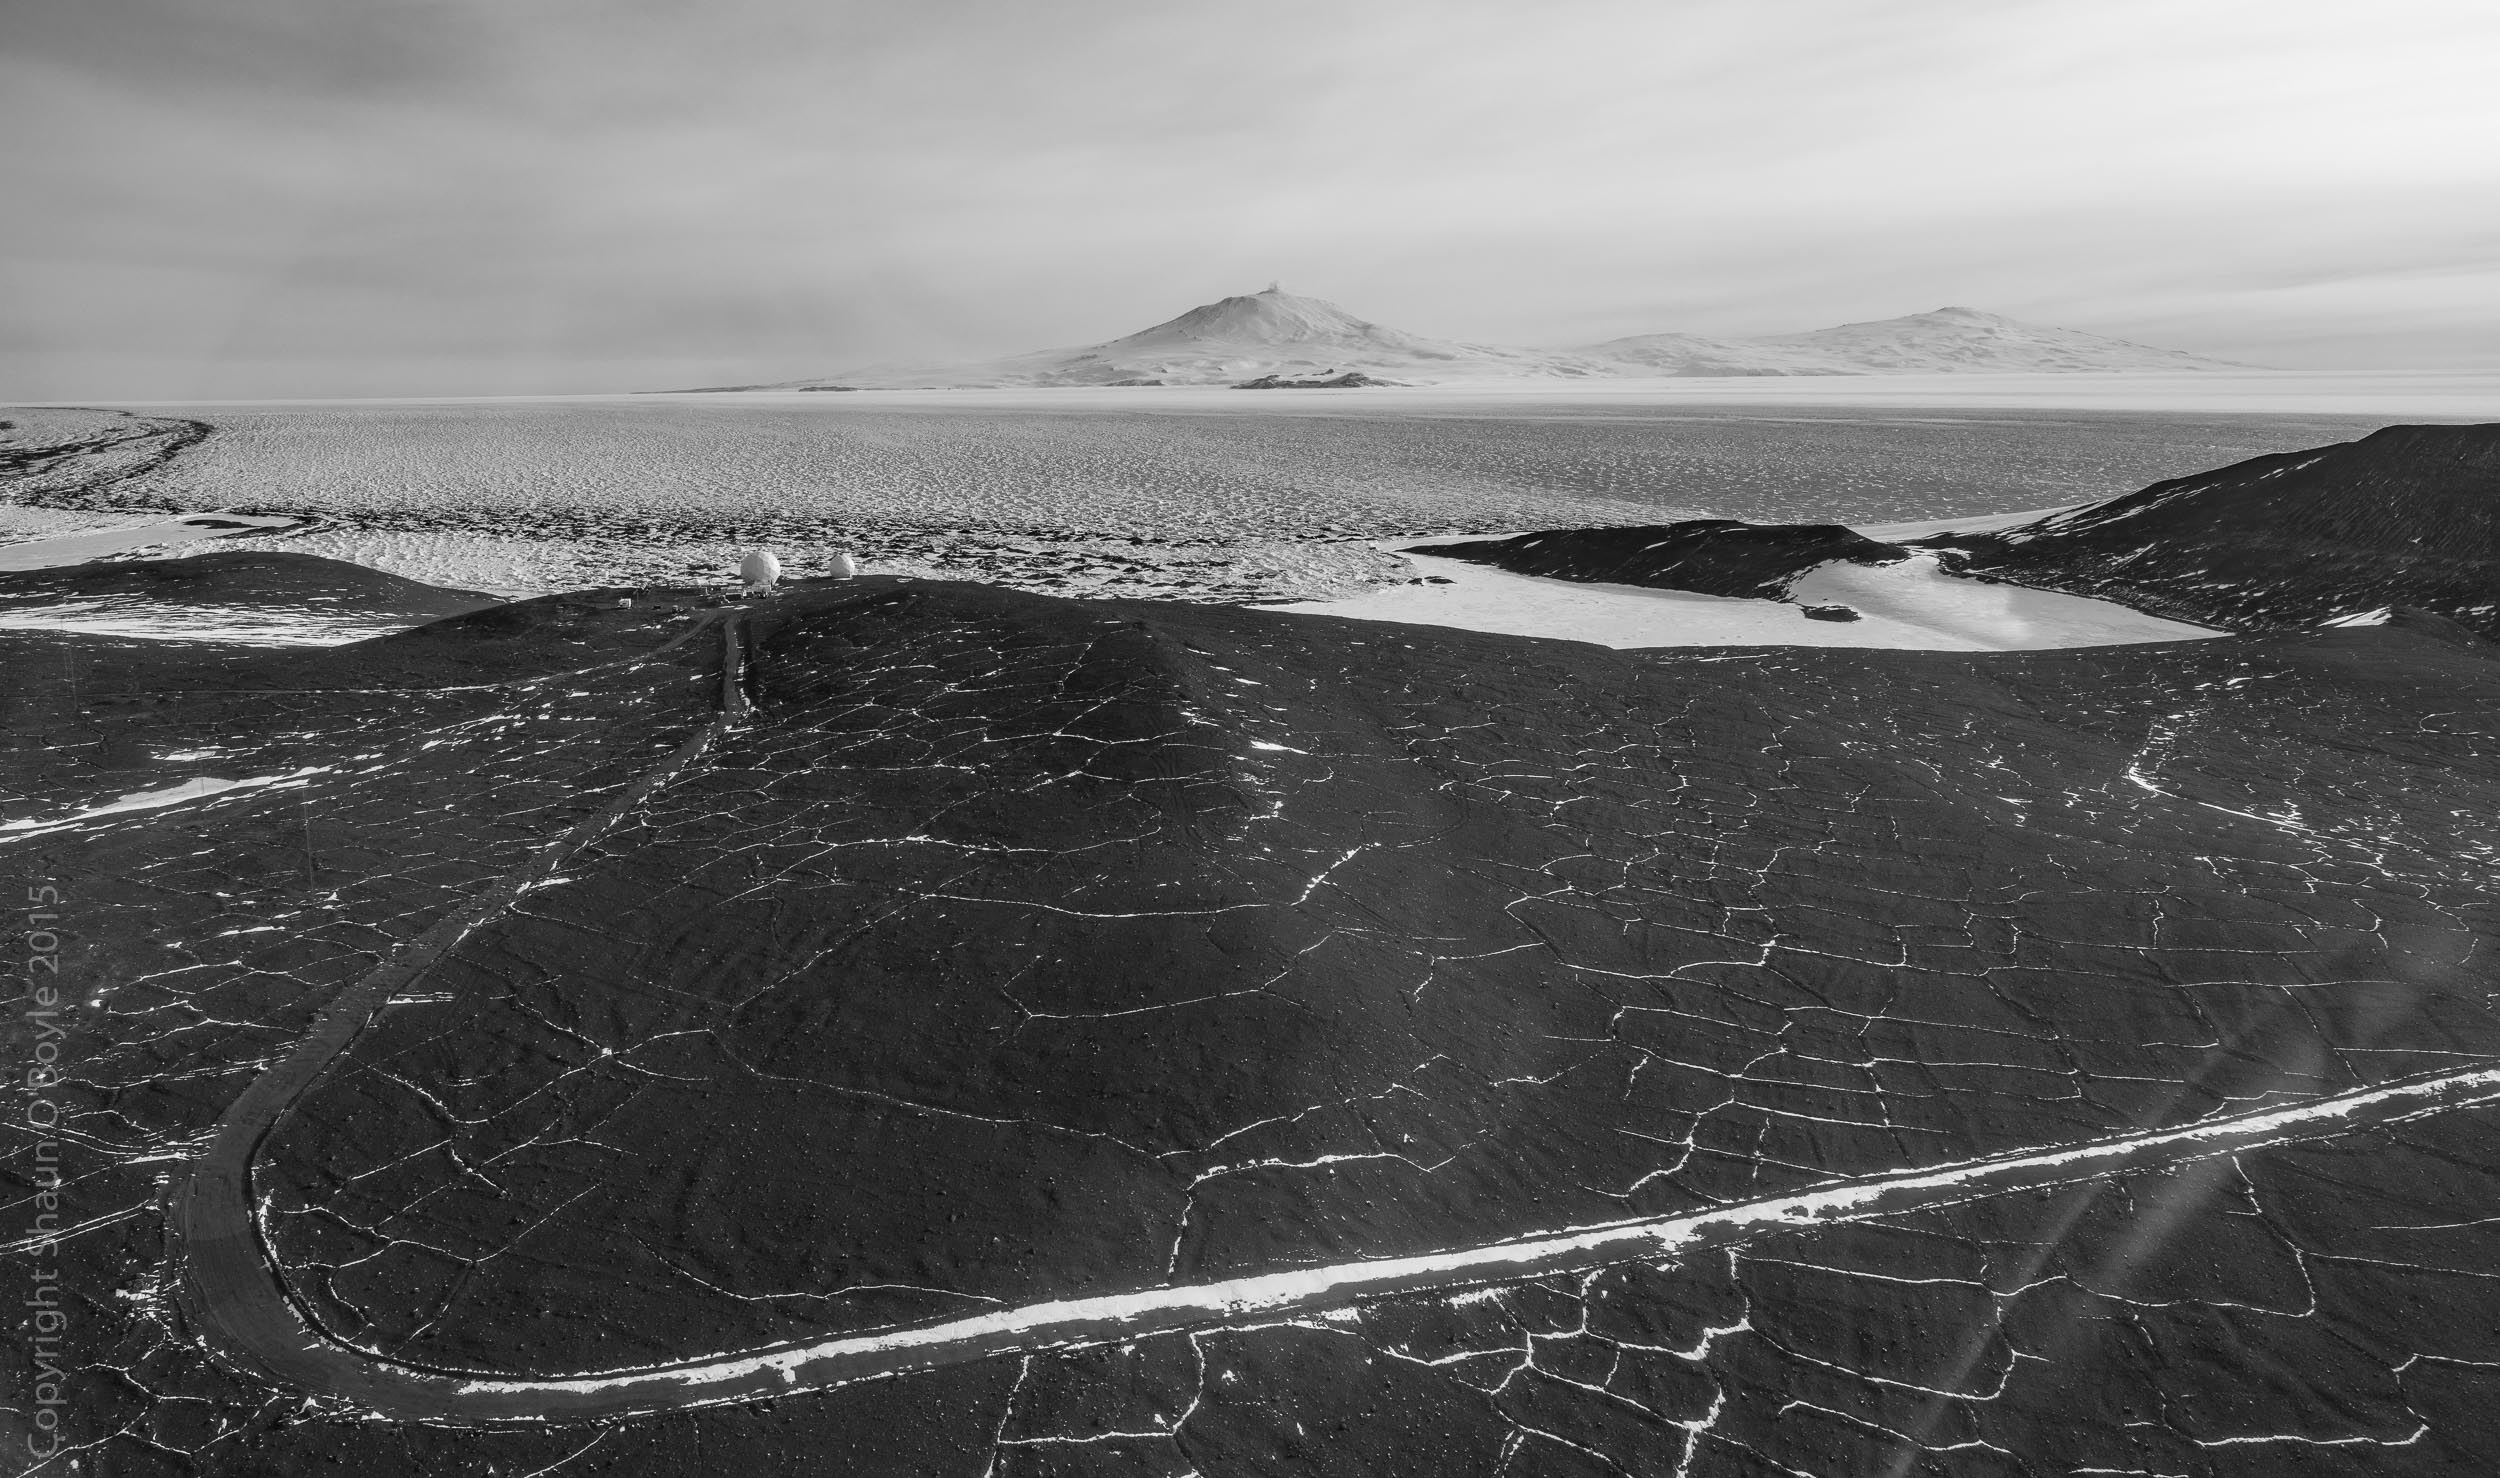 Road on Black Island is used when a traverse from McMurdo is necessary to bring supplies or equipment to the station.